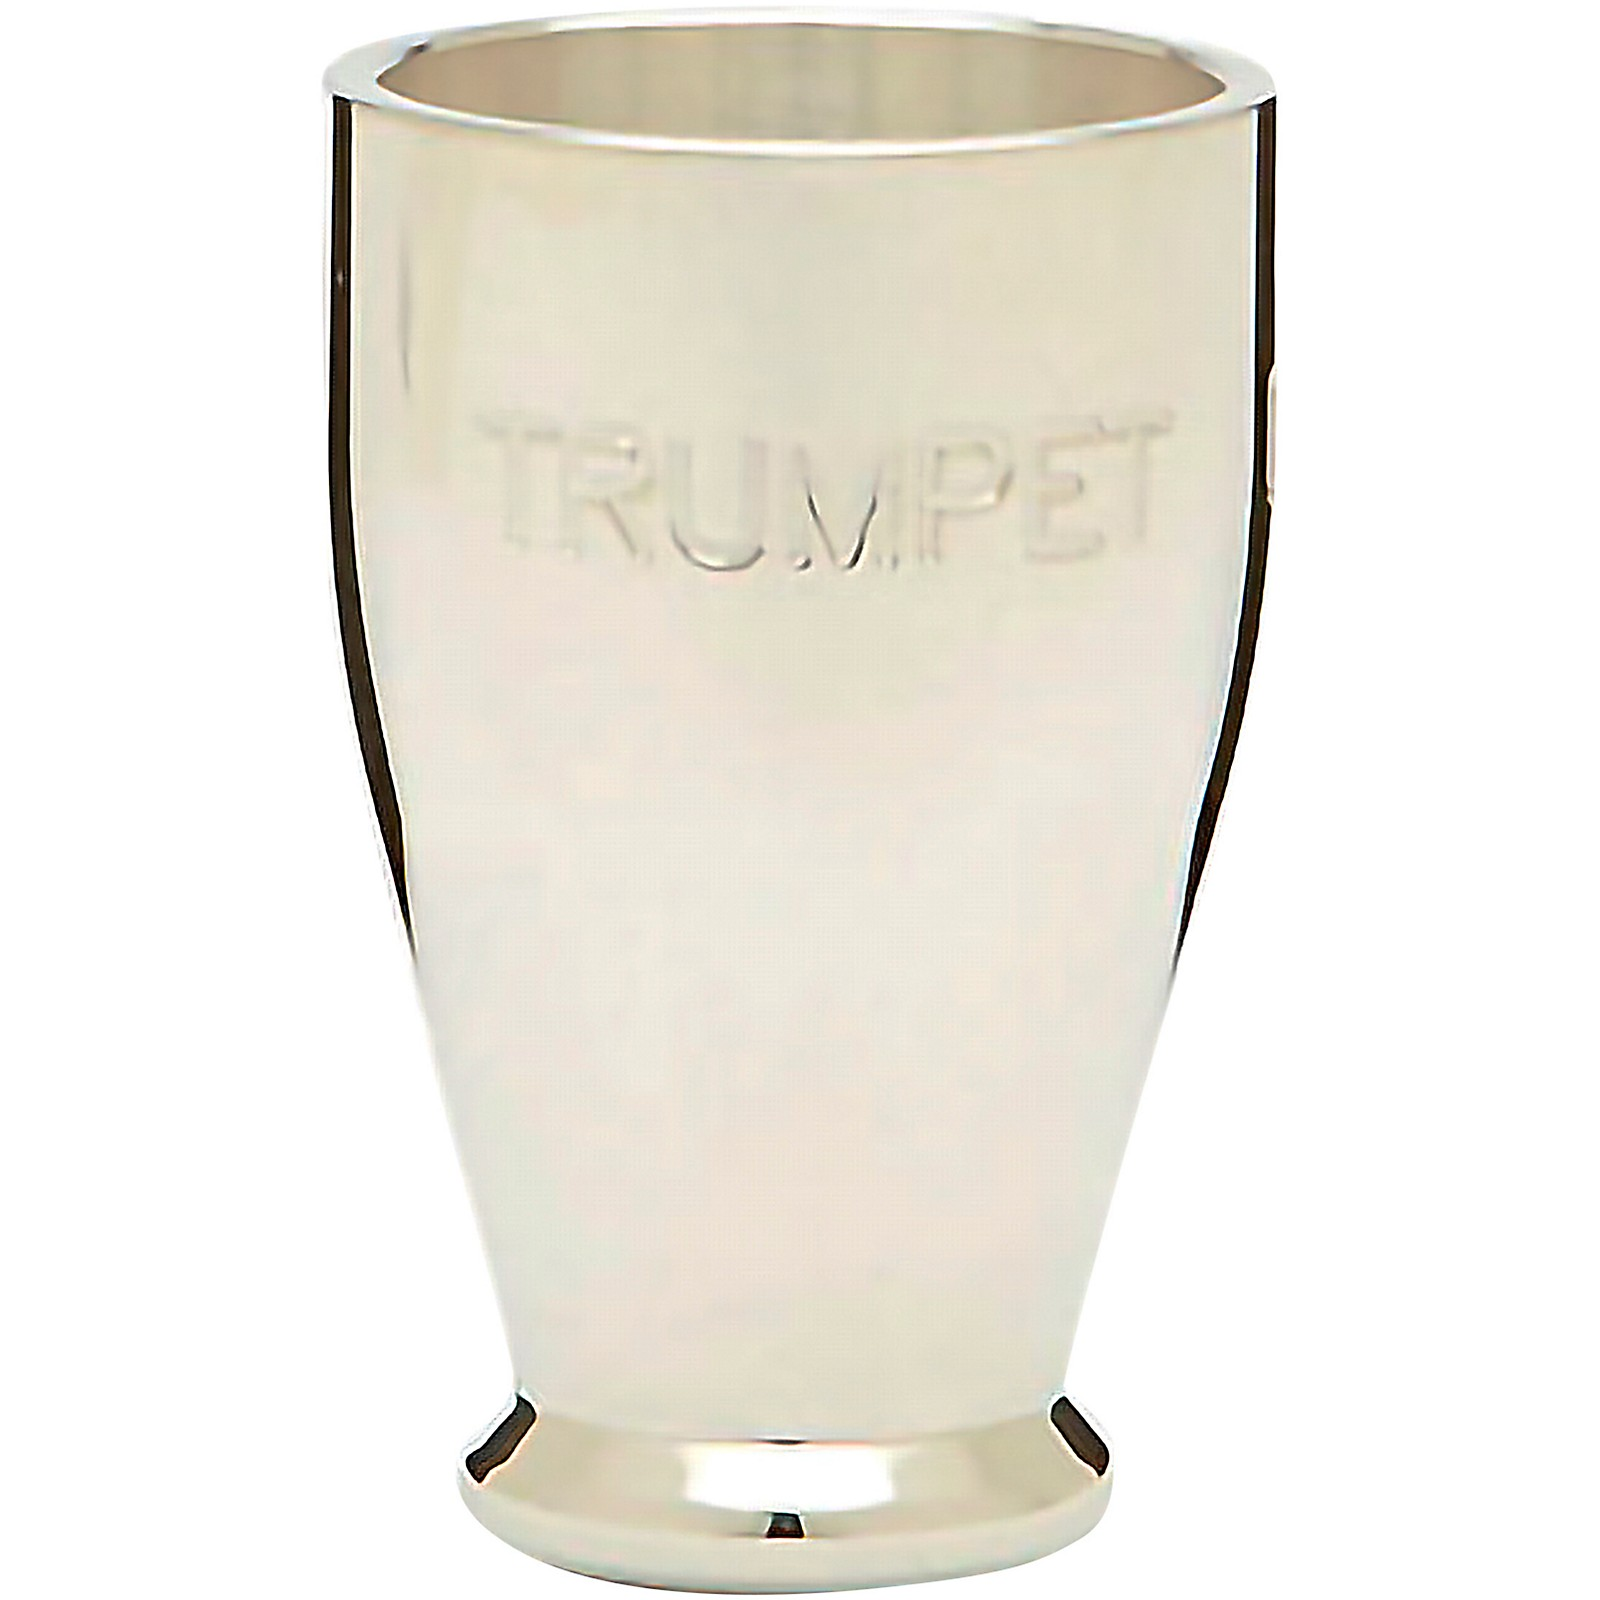 Denis Wick DW6181 HeavyTop Mouthpiece Booster for Trumpet Mouthpiece